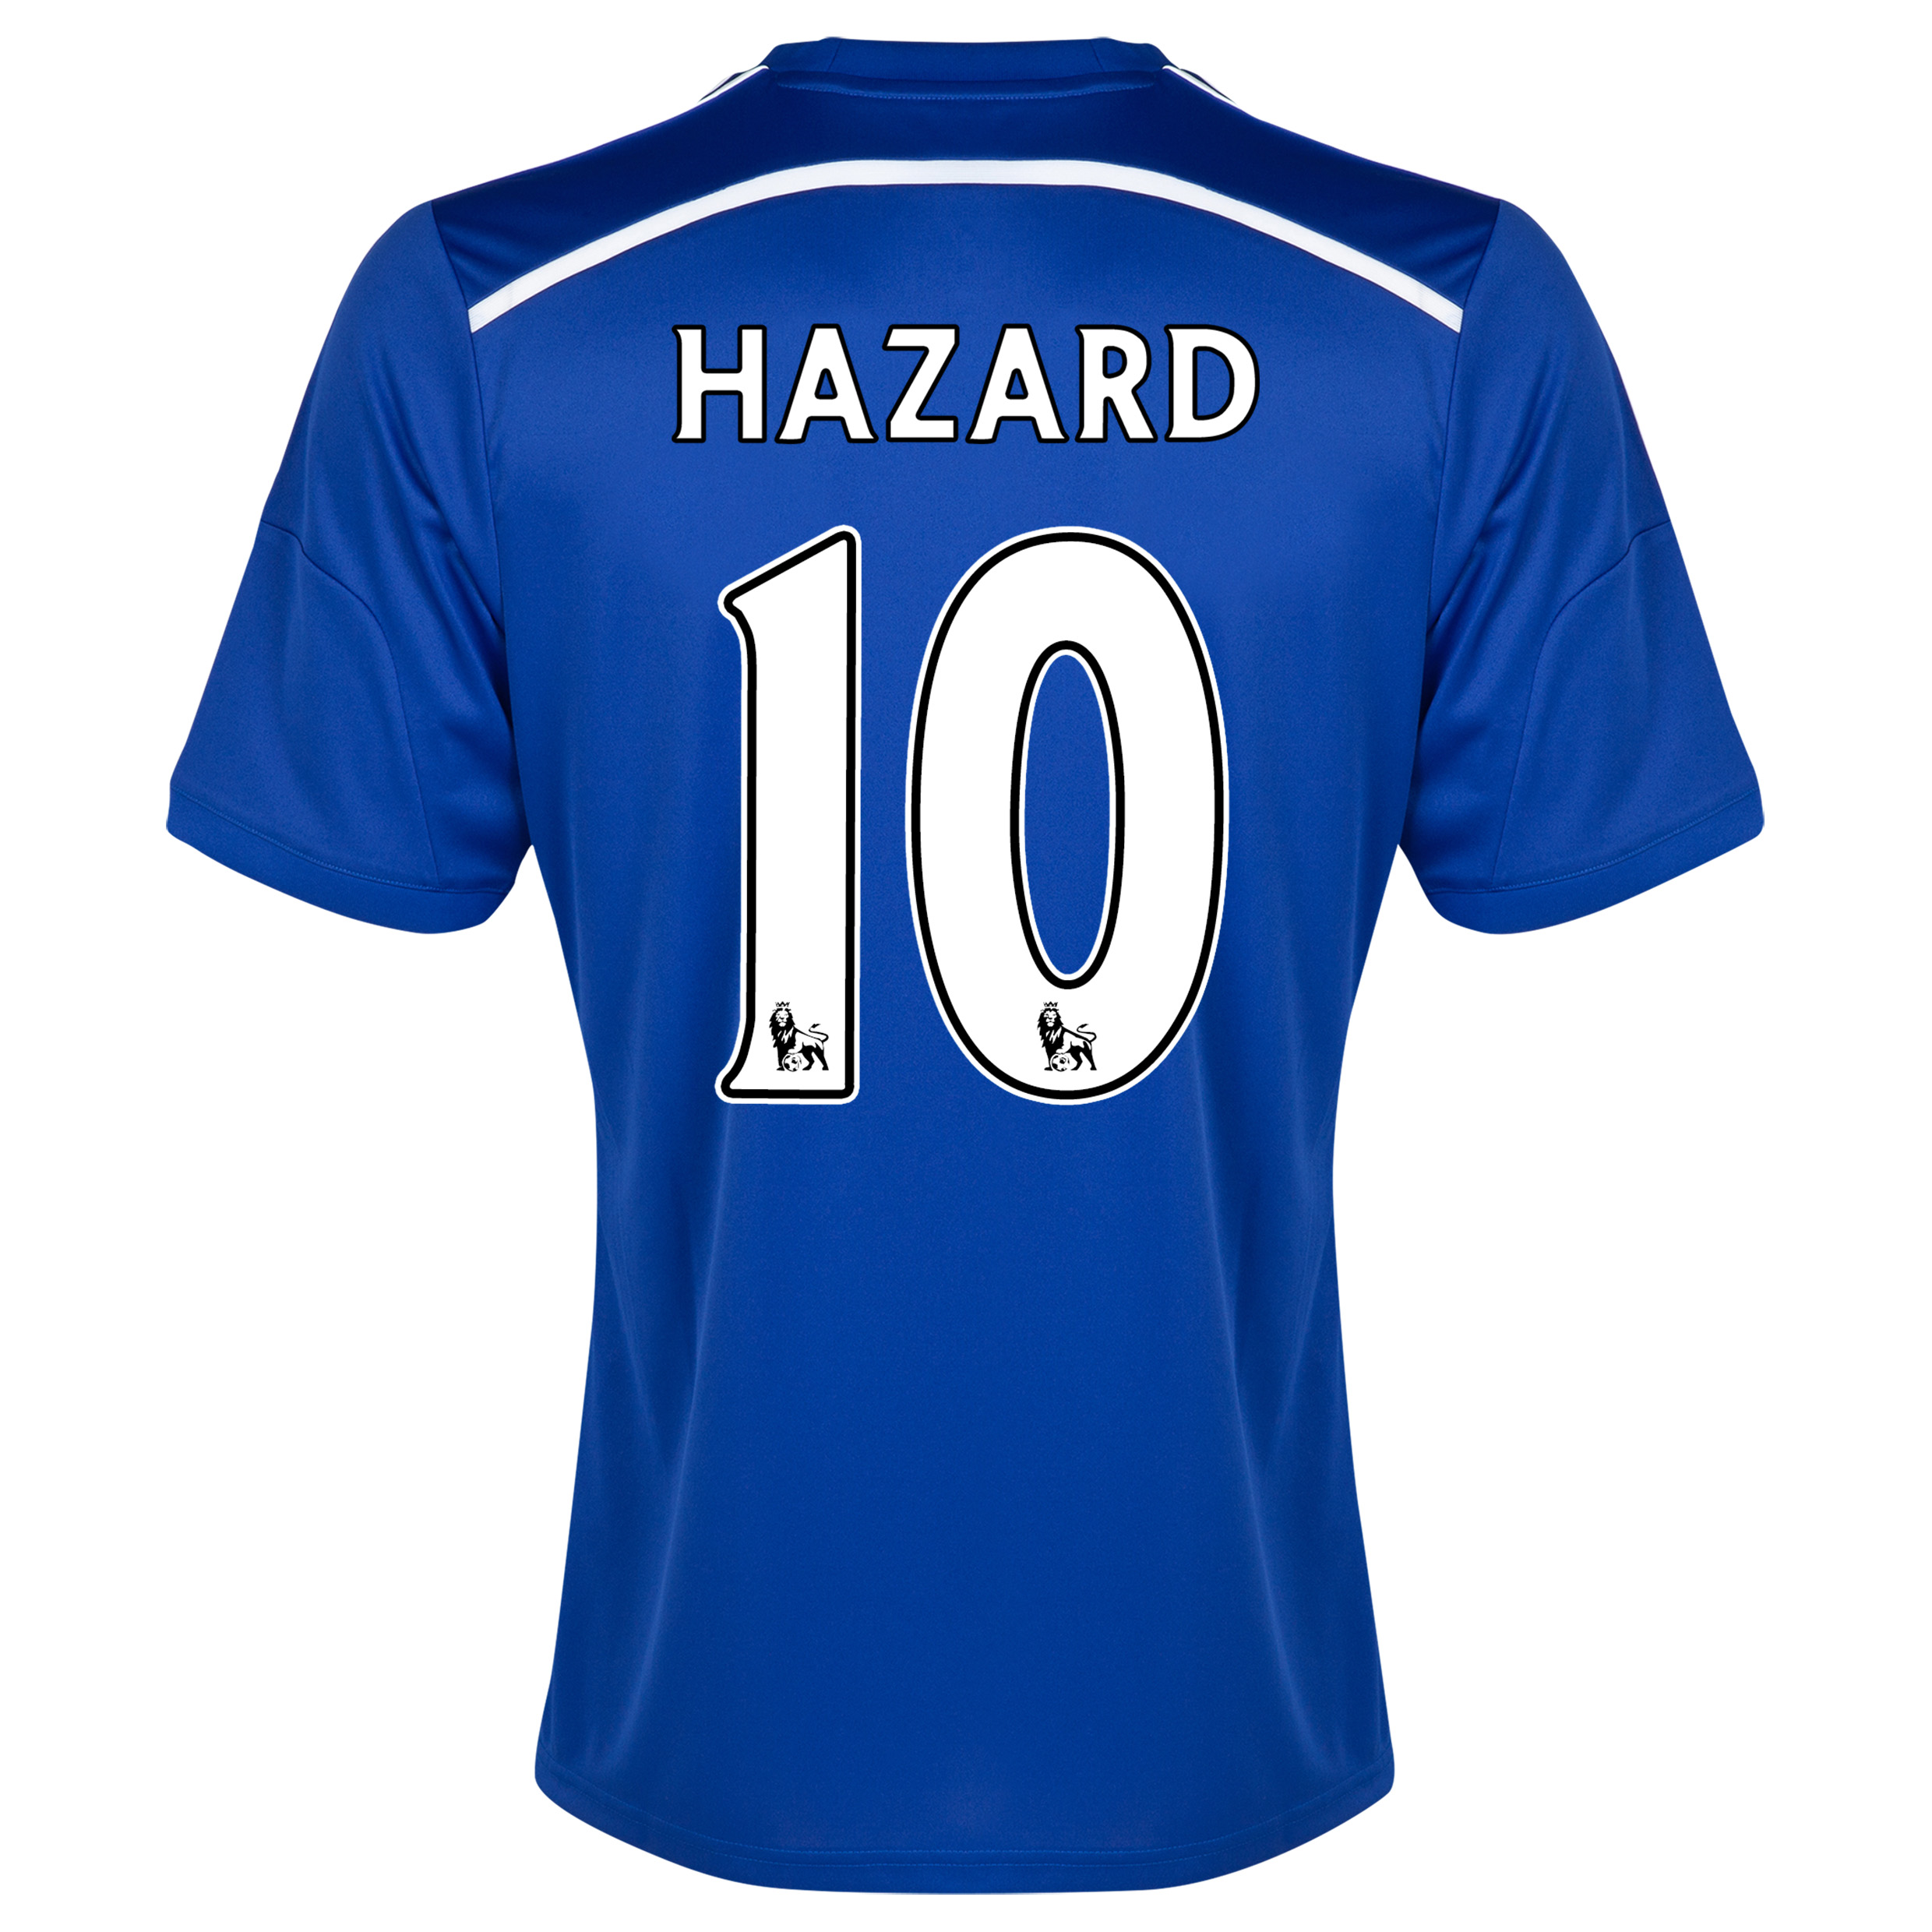 Chelsea Home Shirt 2014/15 Blue with Hazard 10 printing